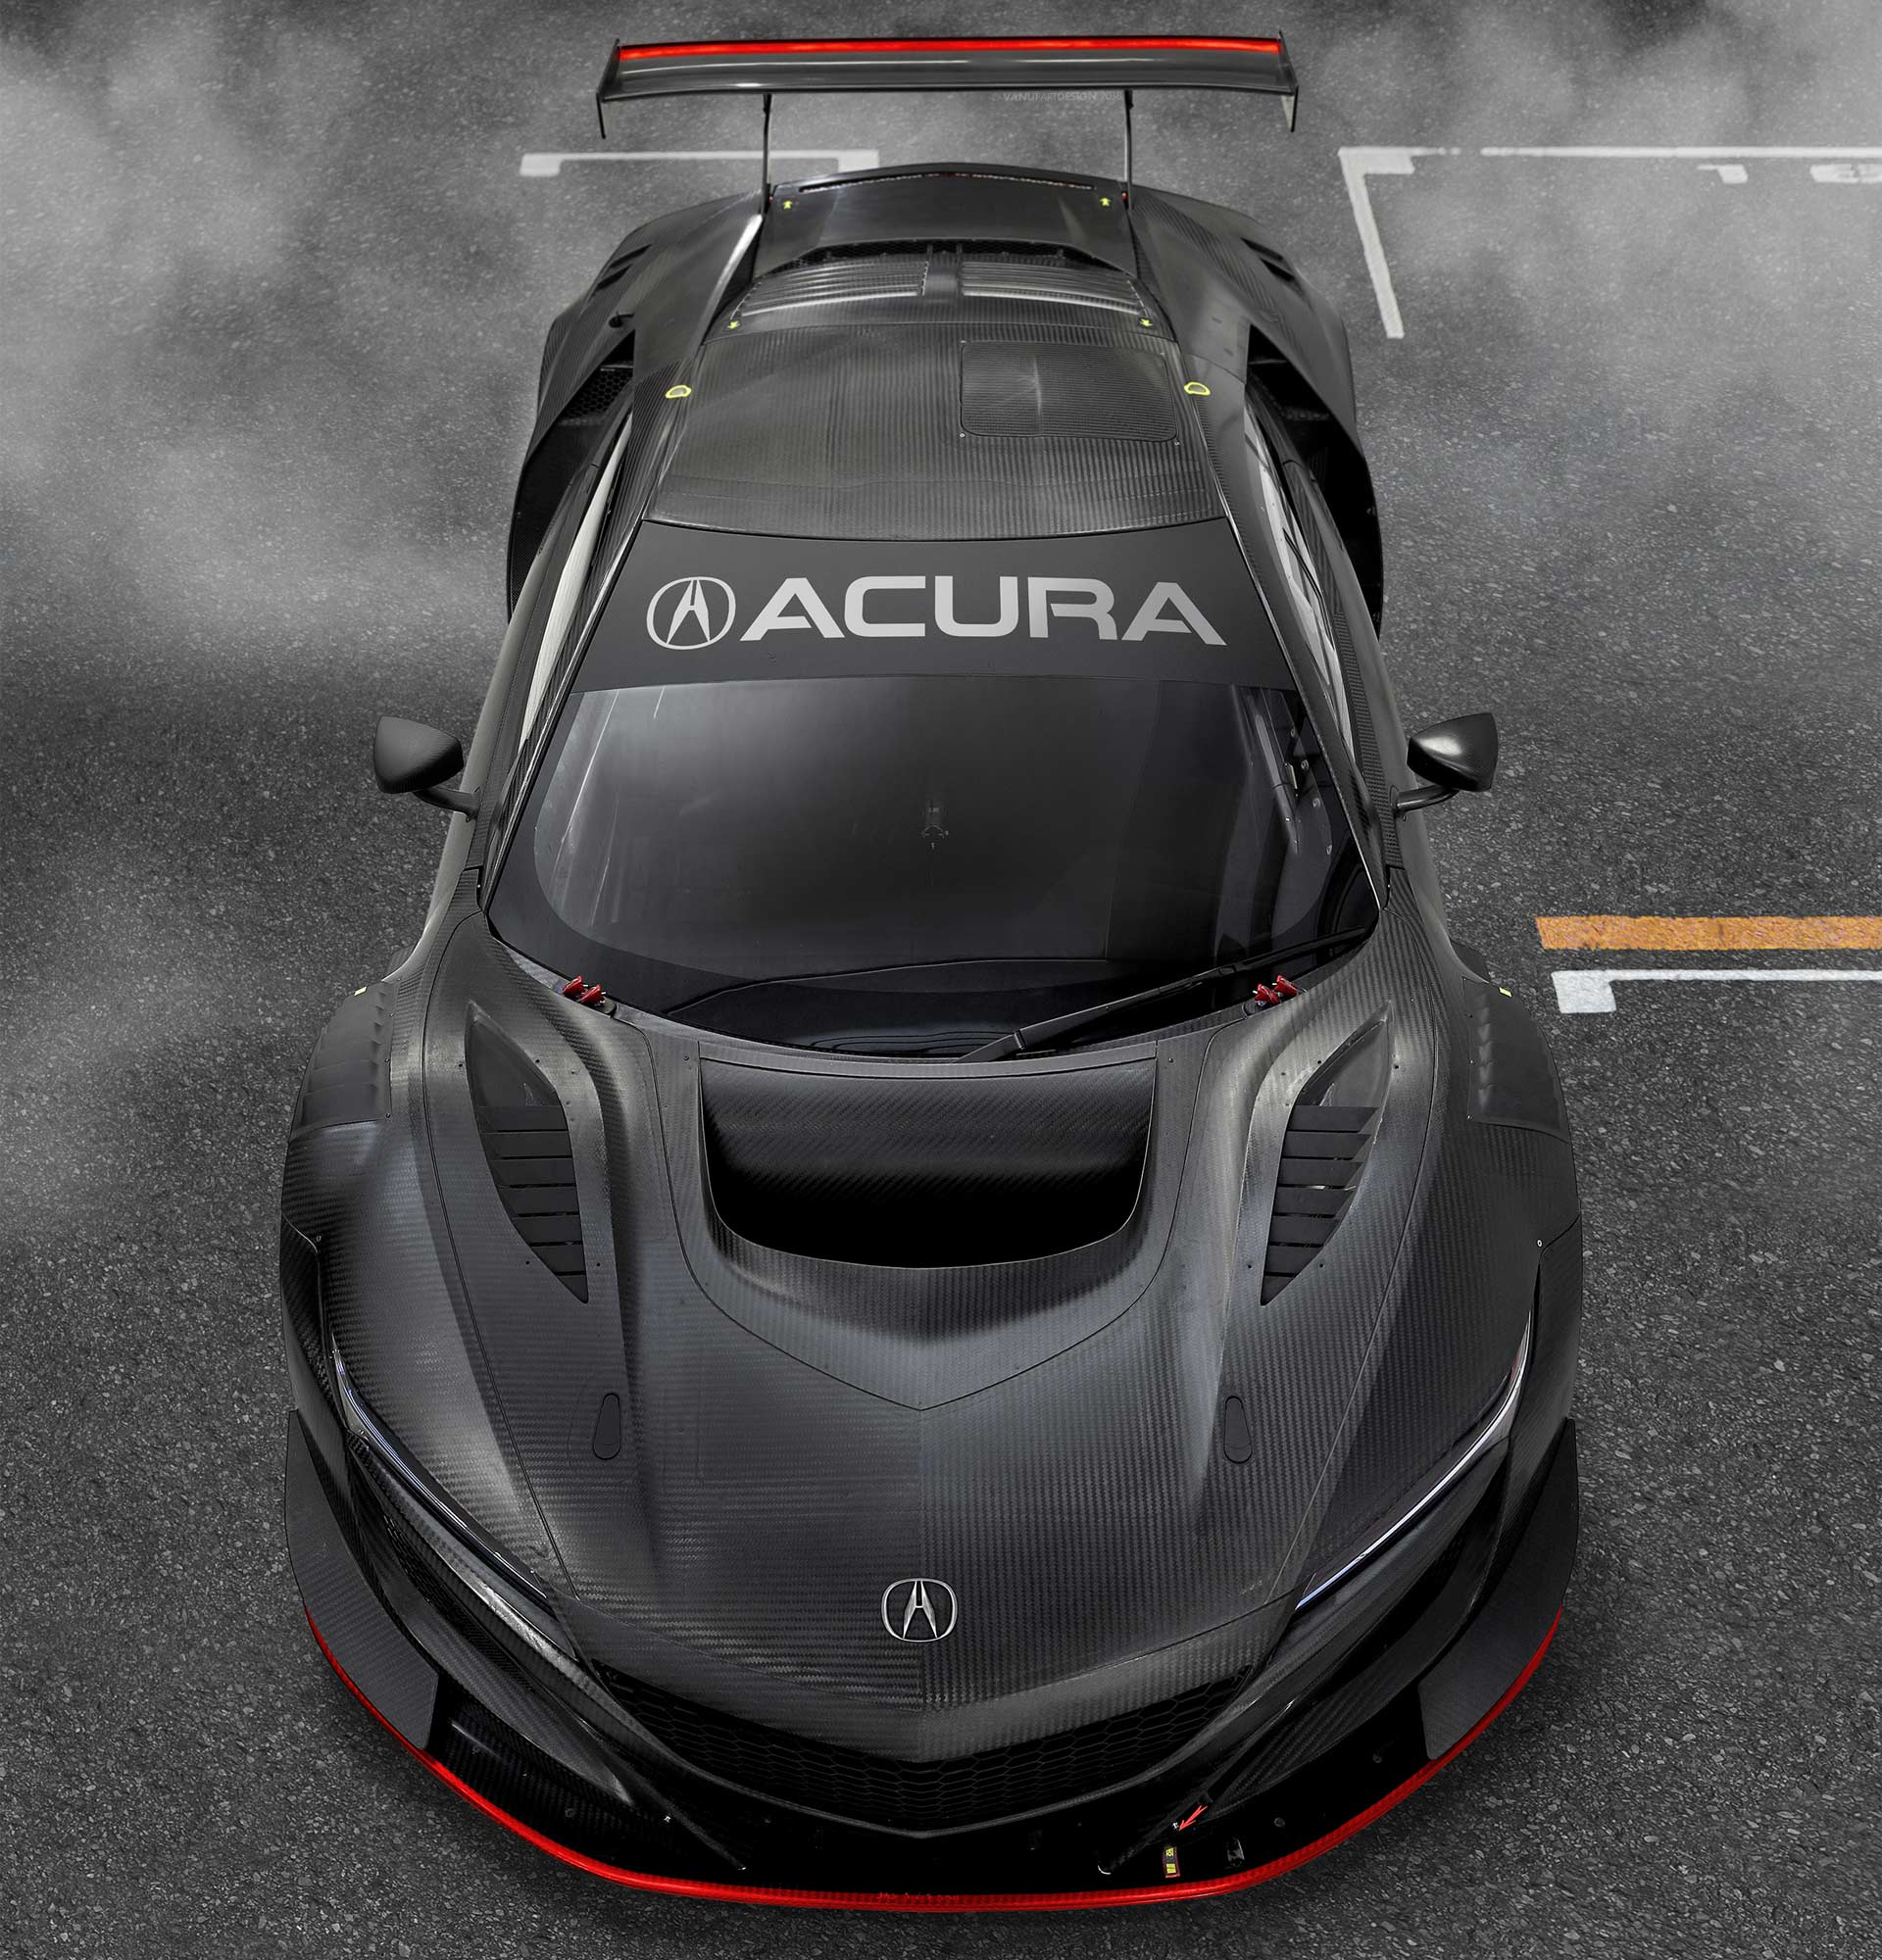 2019 Acura NSX GT3 Evo Is Ready For Race Tracks